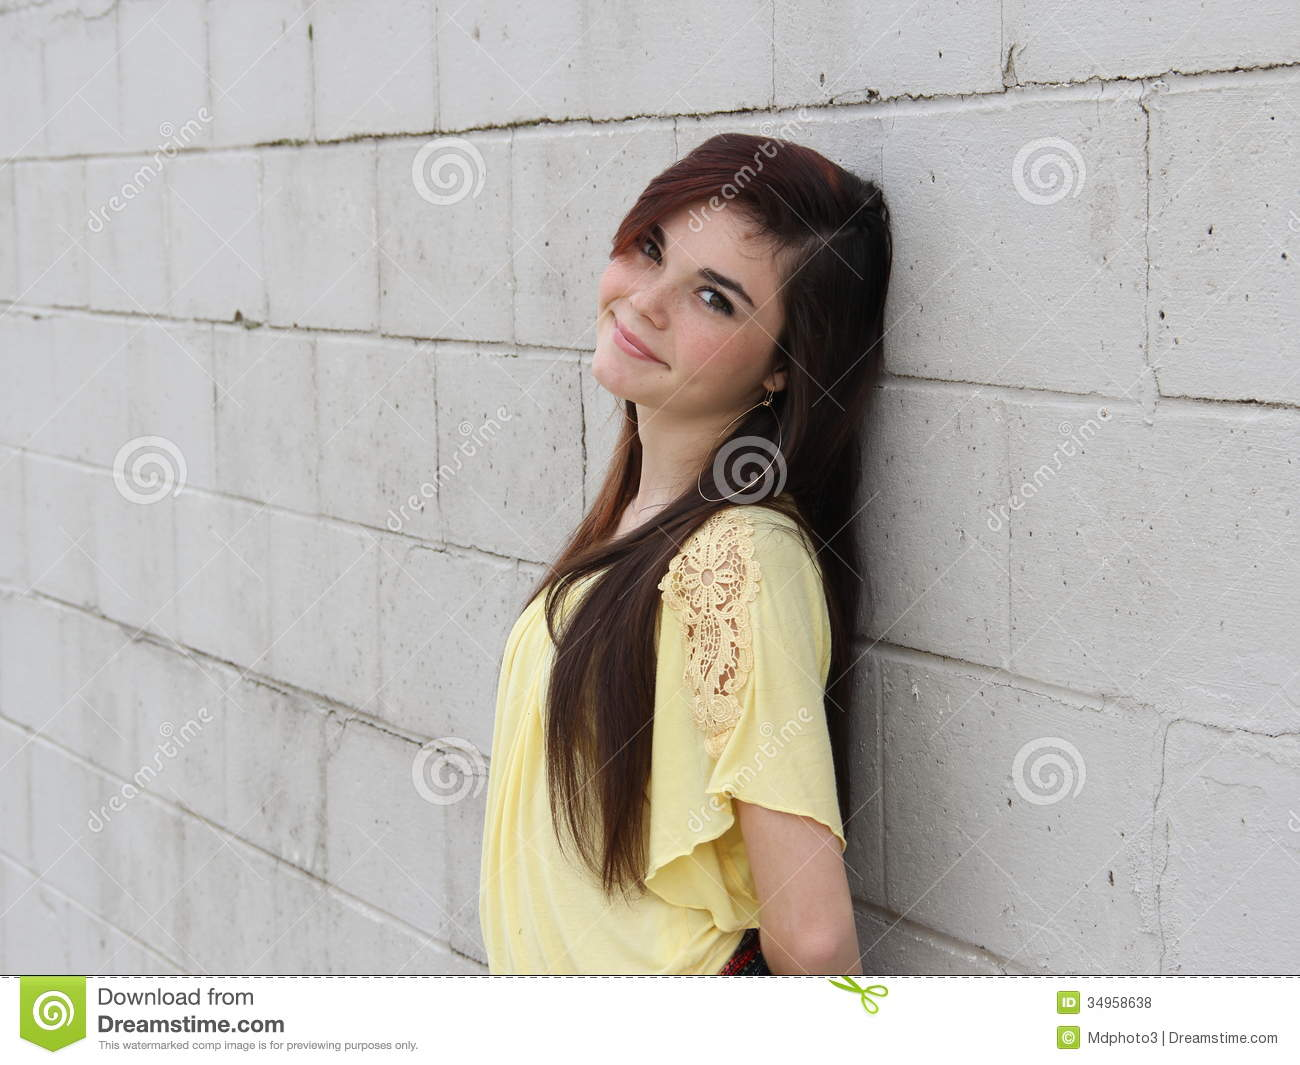 Waterpark Naked